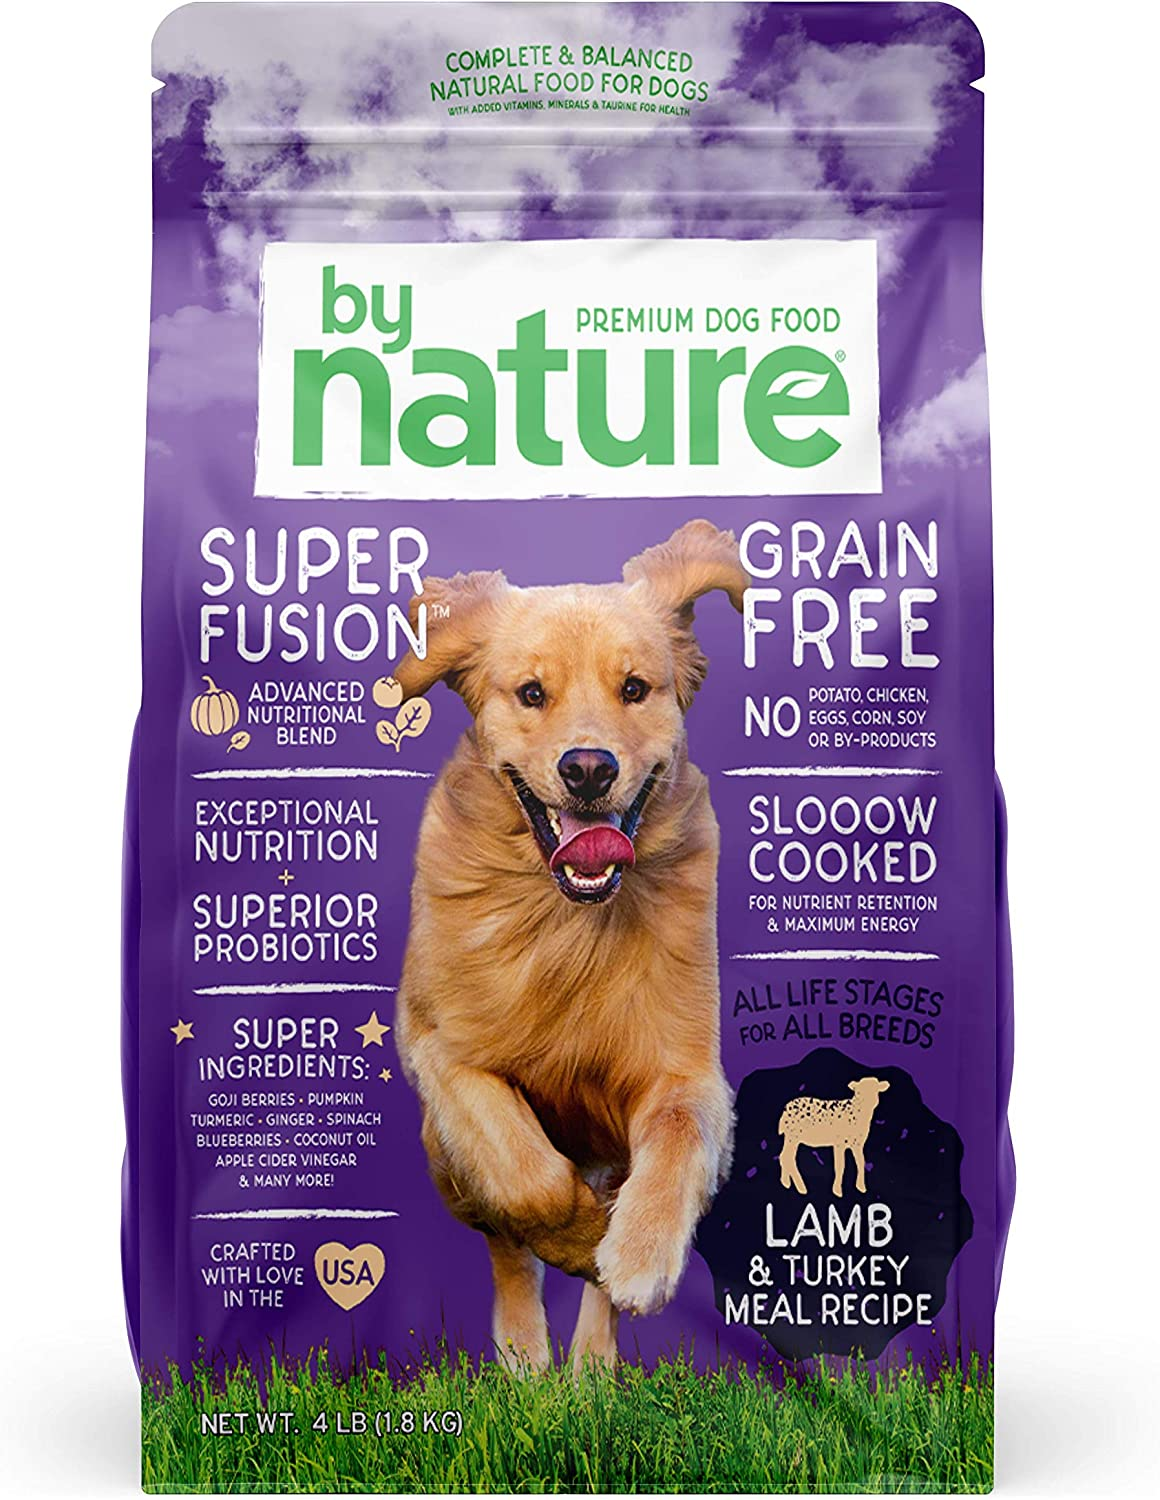 By Nature Pet Foods Grain Free Dog Food Made in USA [Grain Free Dry Dog Food with Superfood Ingredients for Food Sensitivities and Immune Health], Lamb & Turkey Meal Recipe, 4 lb. Bag, Brown (77070)